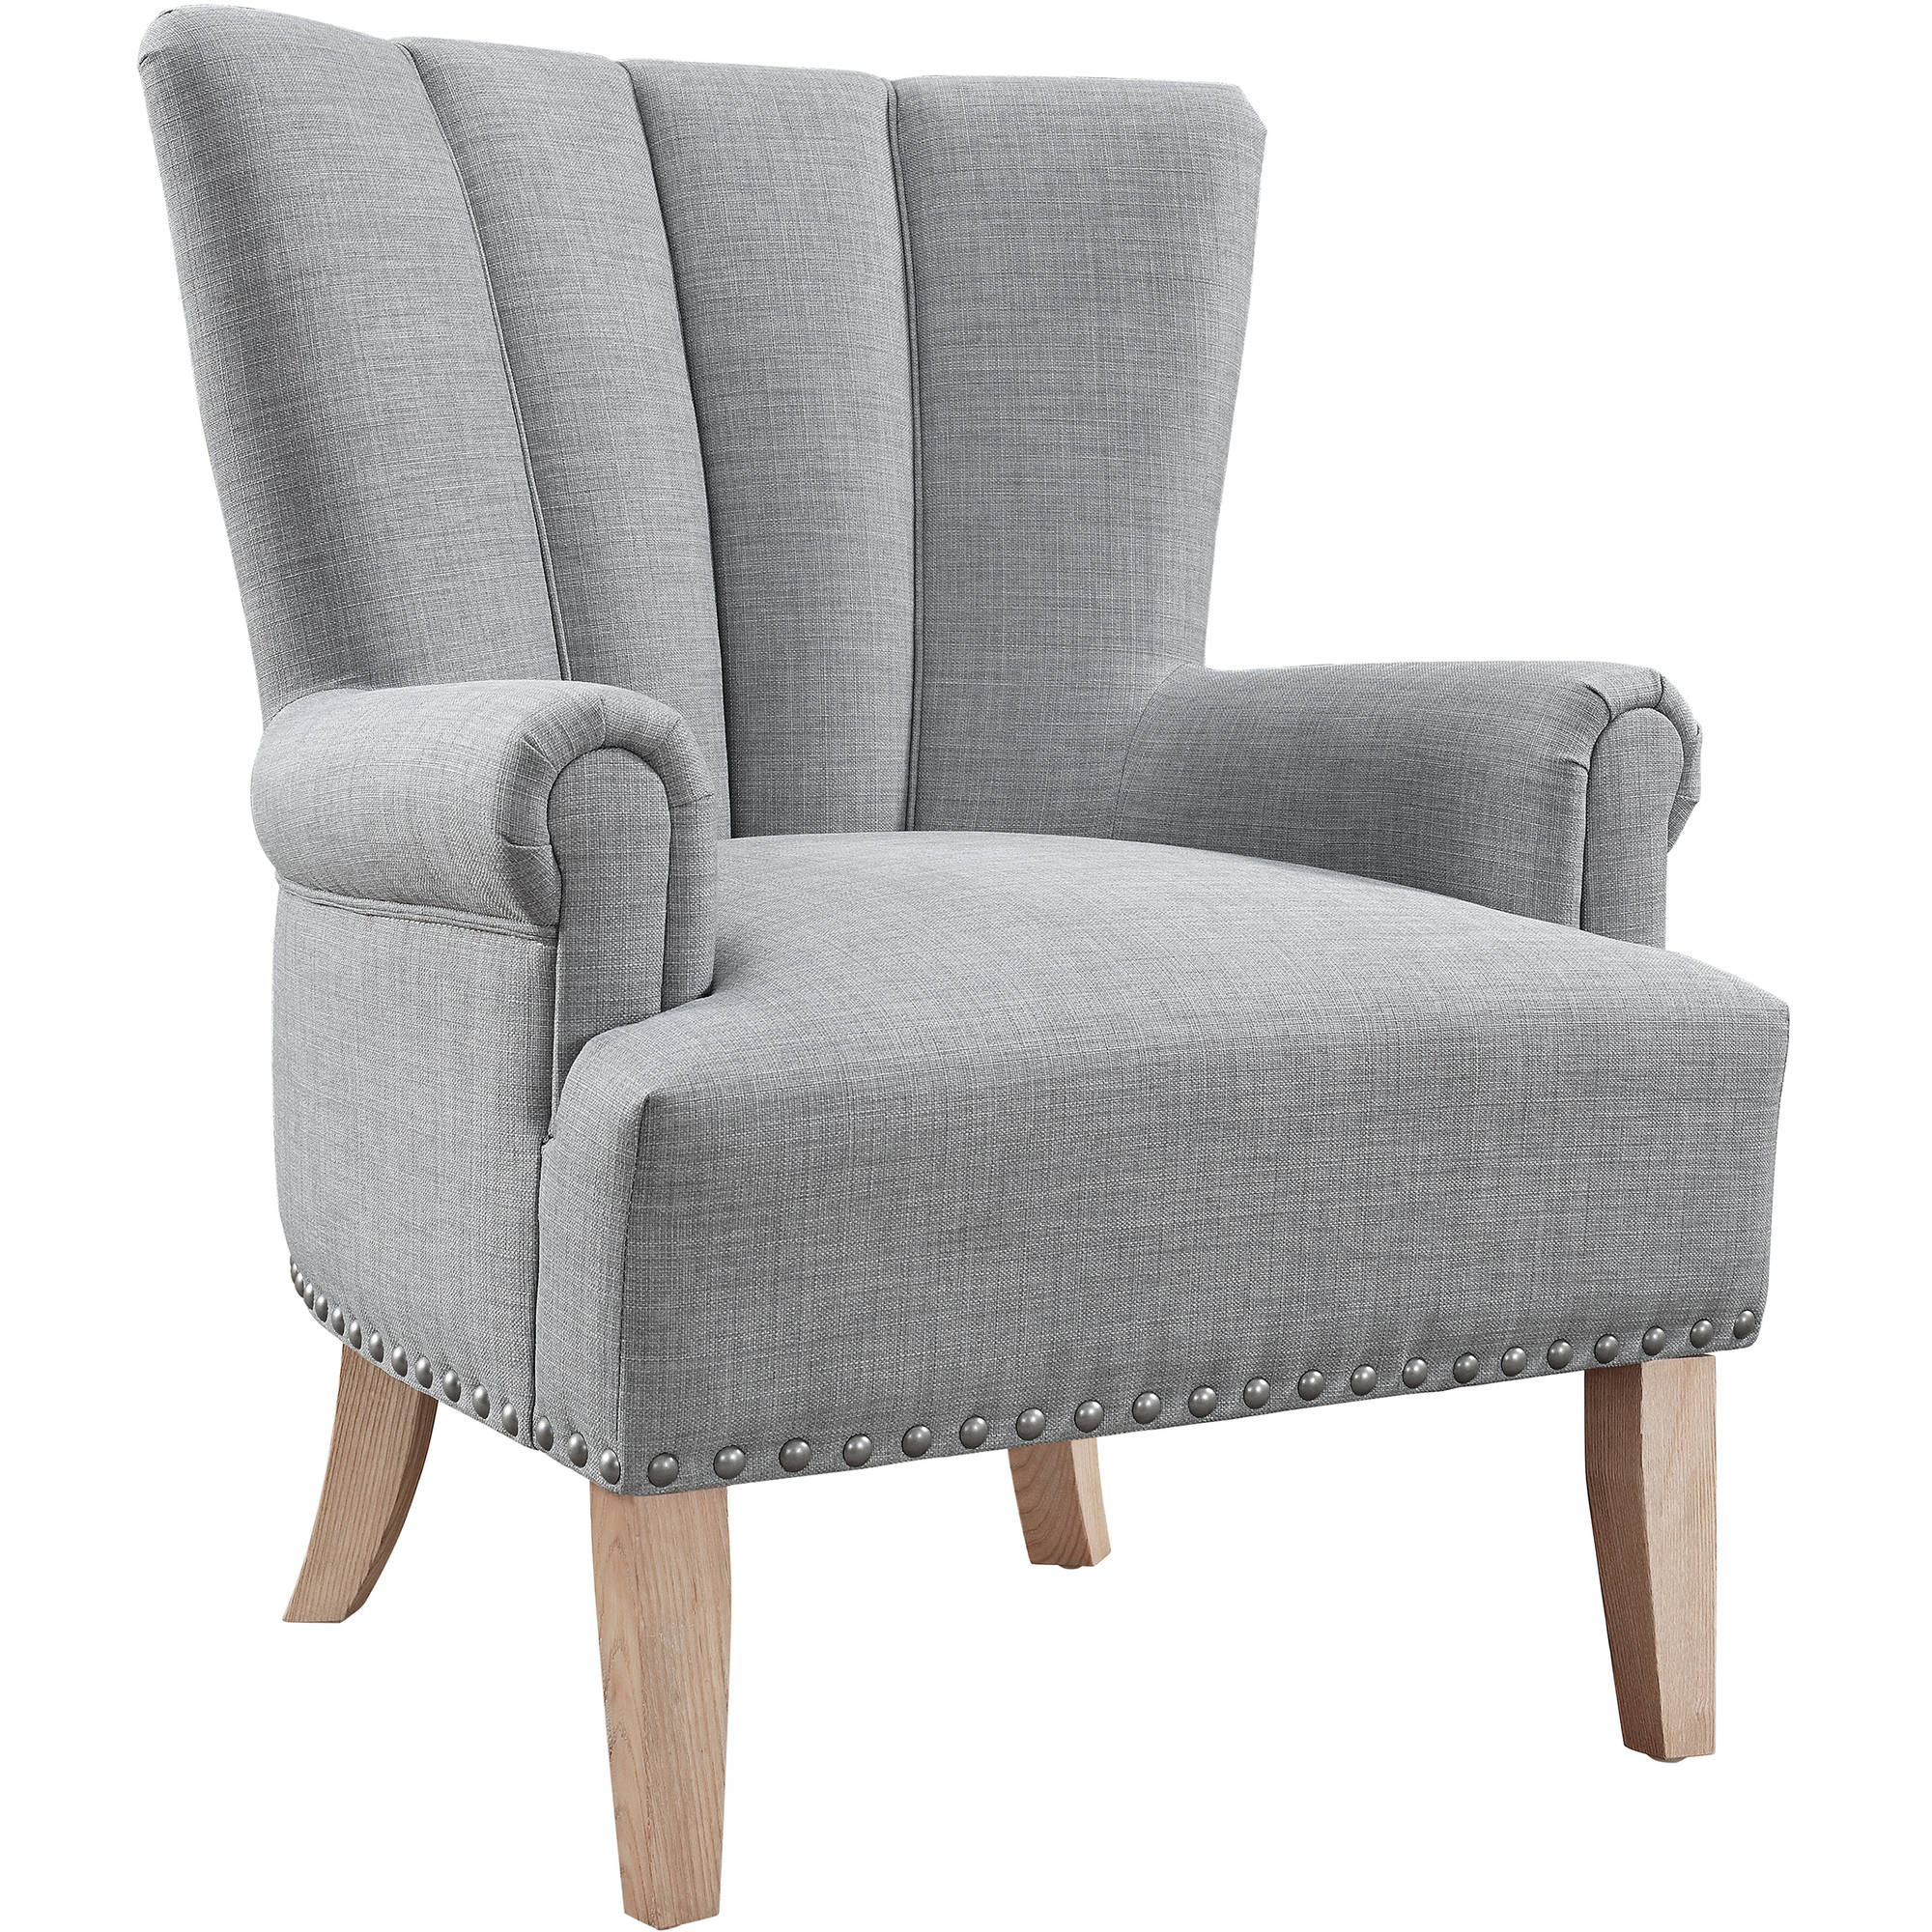 better homes and gardens accent chair, multiple colors - walmart